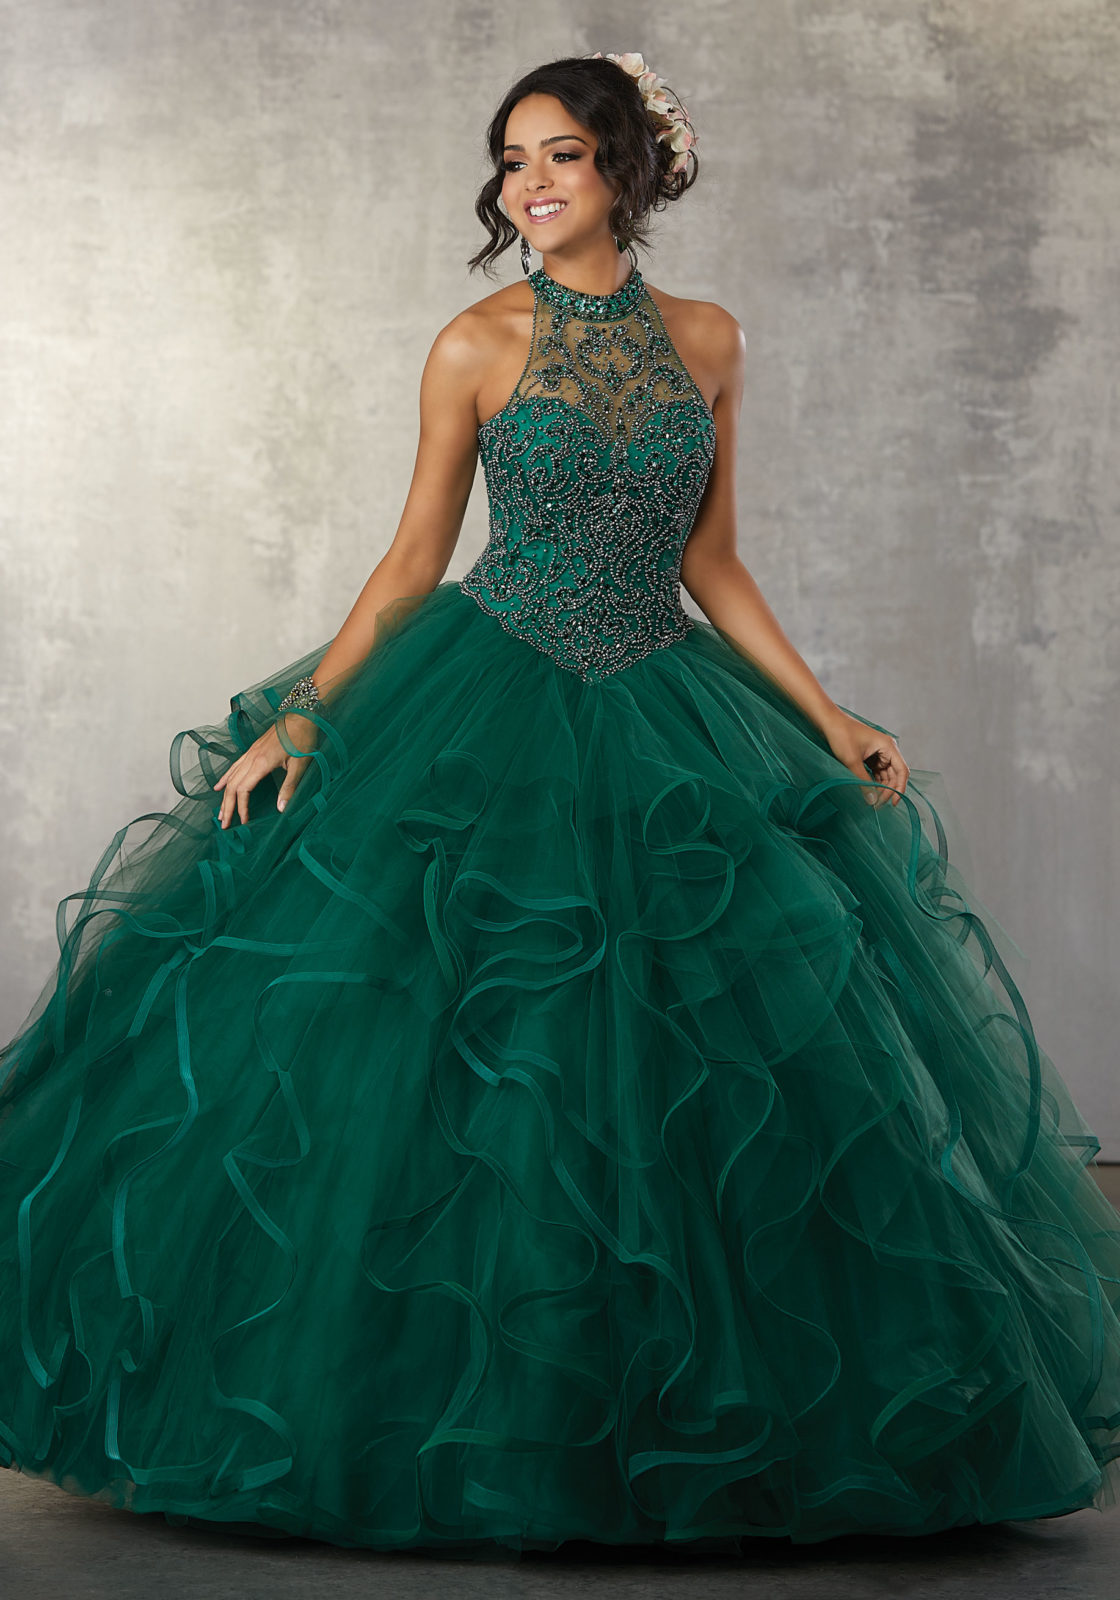 Green Ruffles Puffy Ball Gown Quinceanera Dresses 2018 Crystal ...